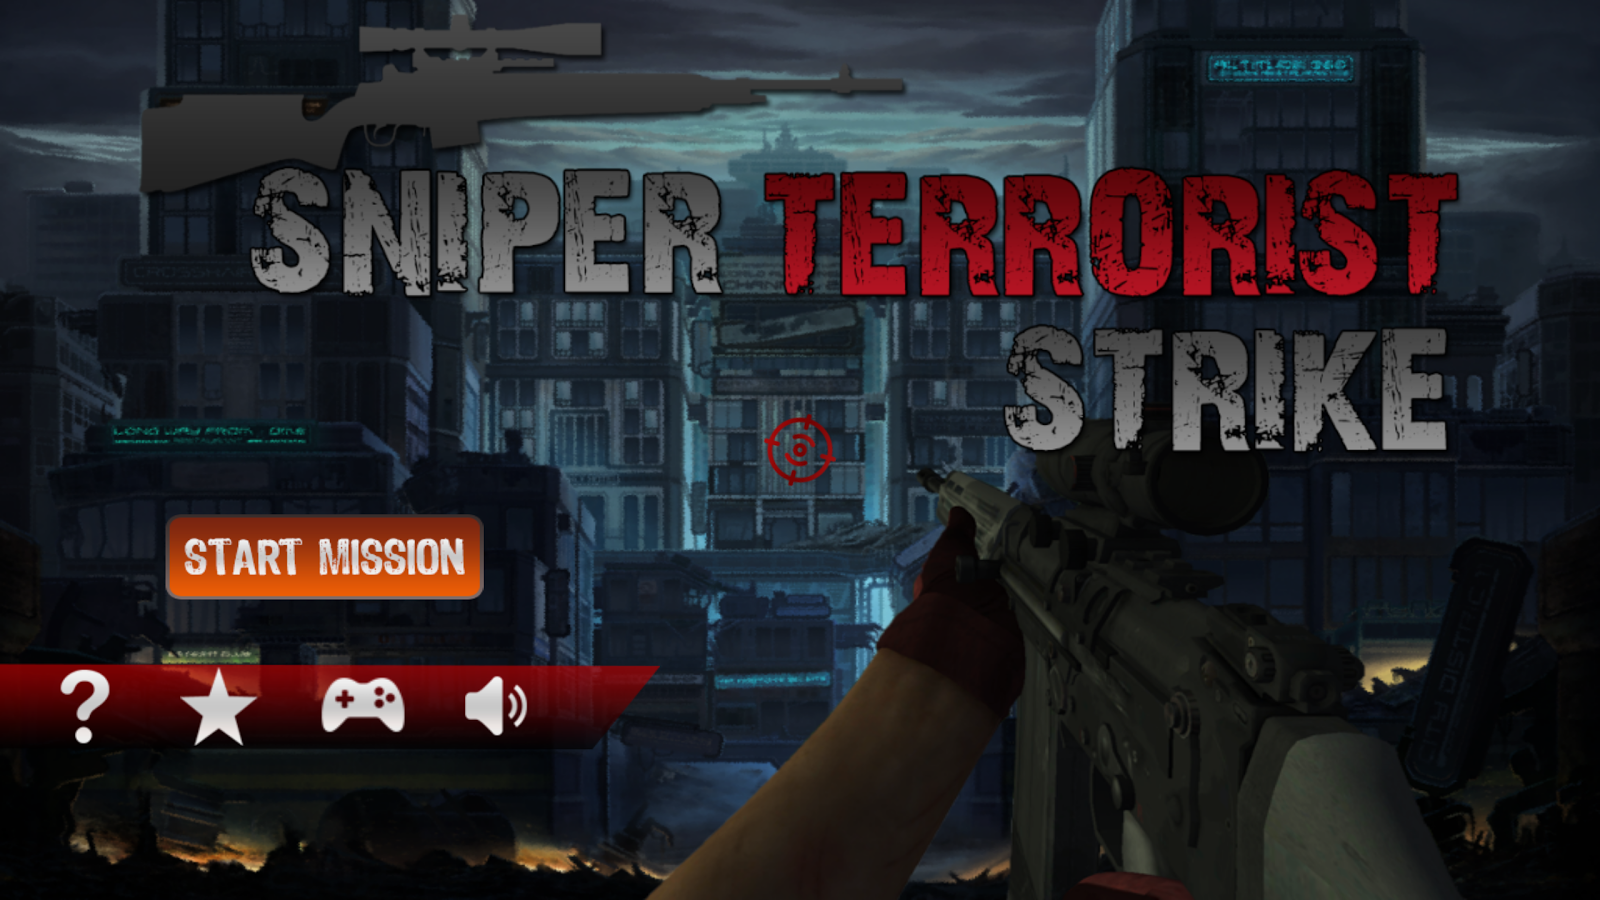 Sniper Terrorist Strike Screenshot 0